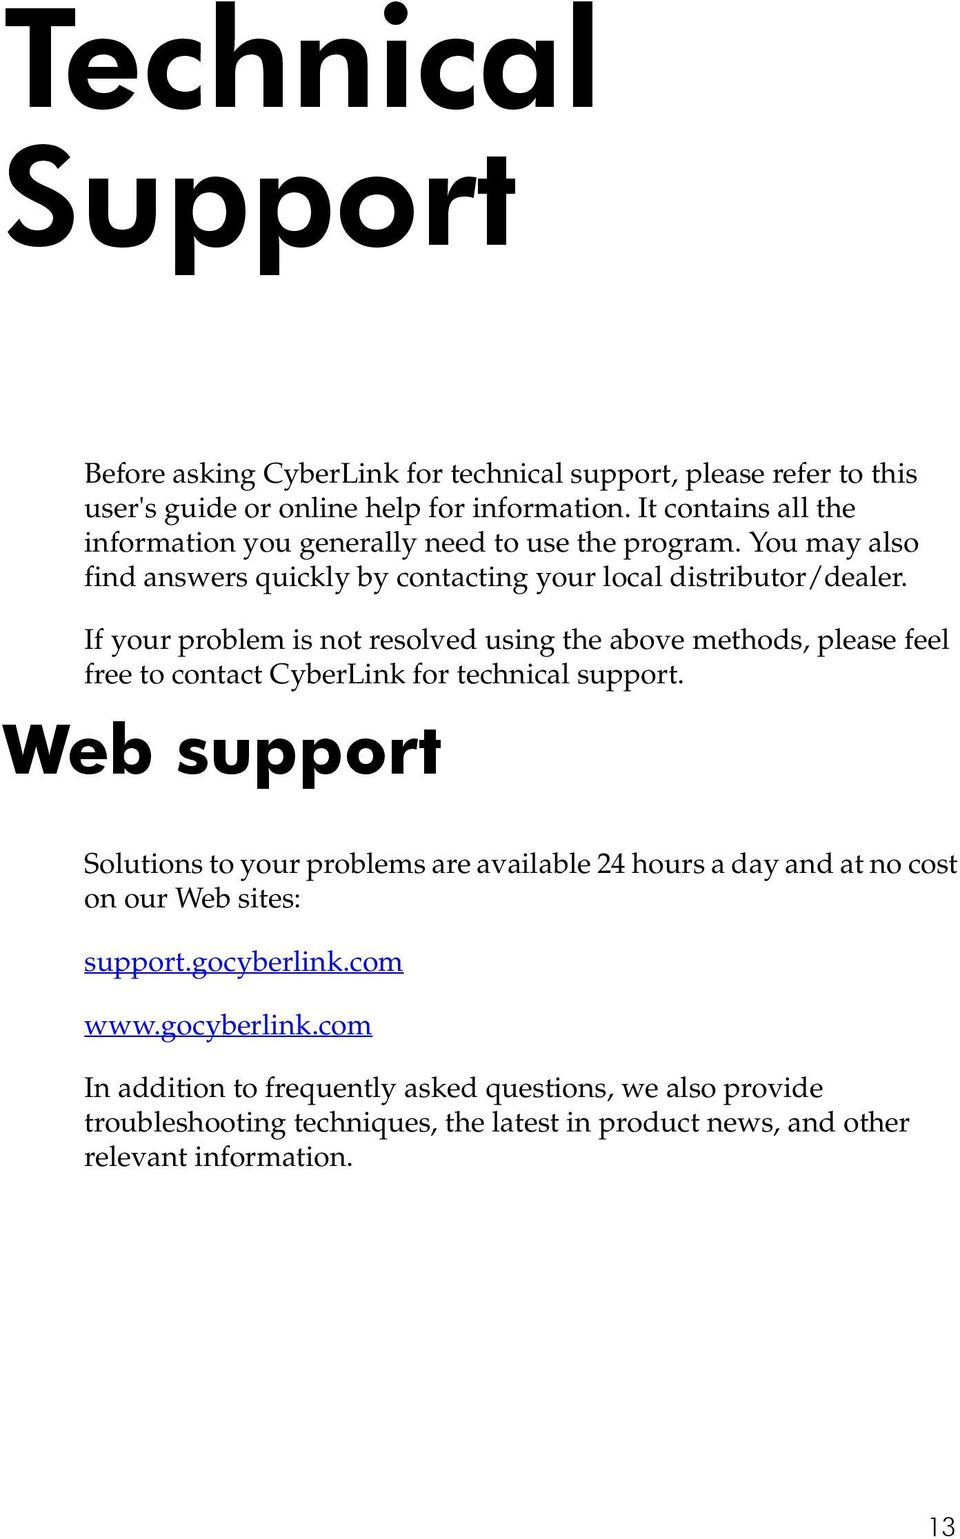 If your problem is not resolved using the above methods, please feel free to contact CyberLink for technical support.